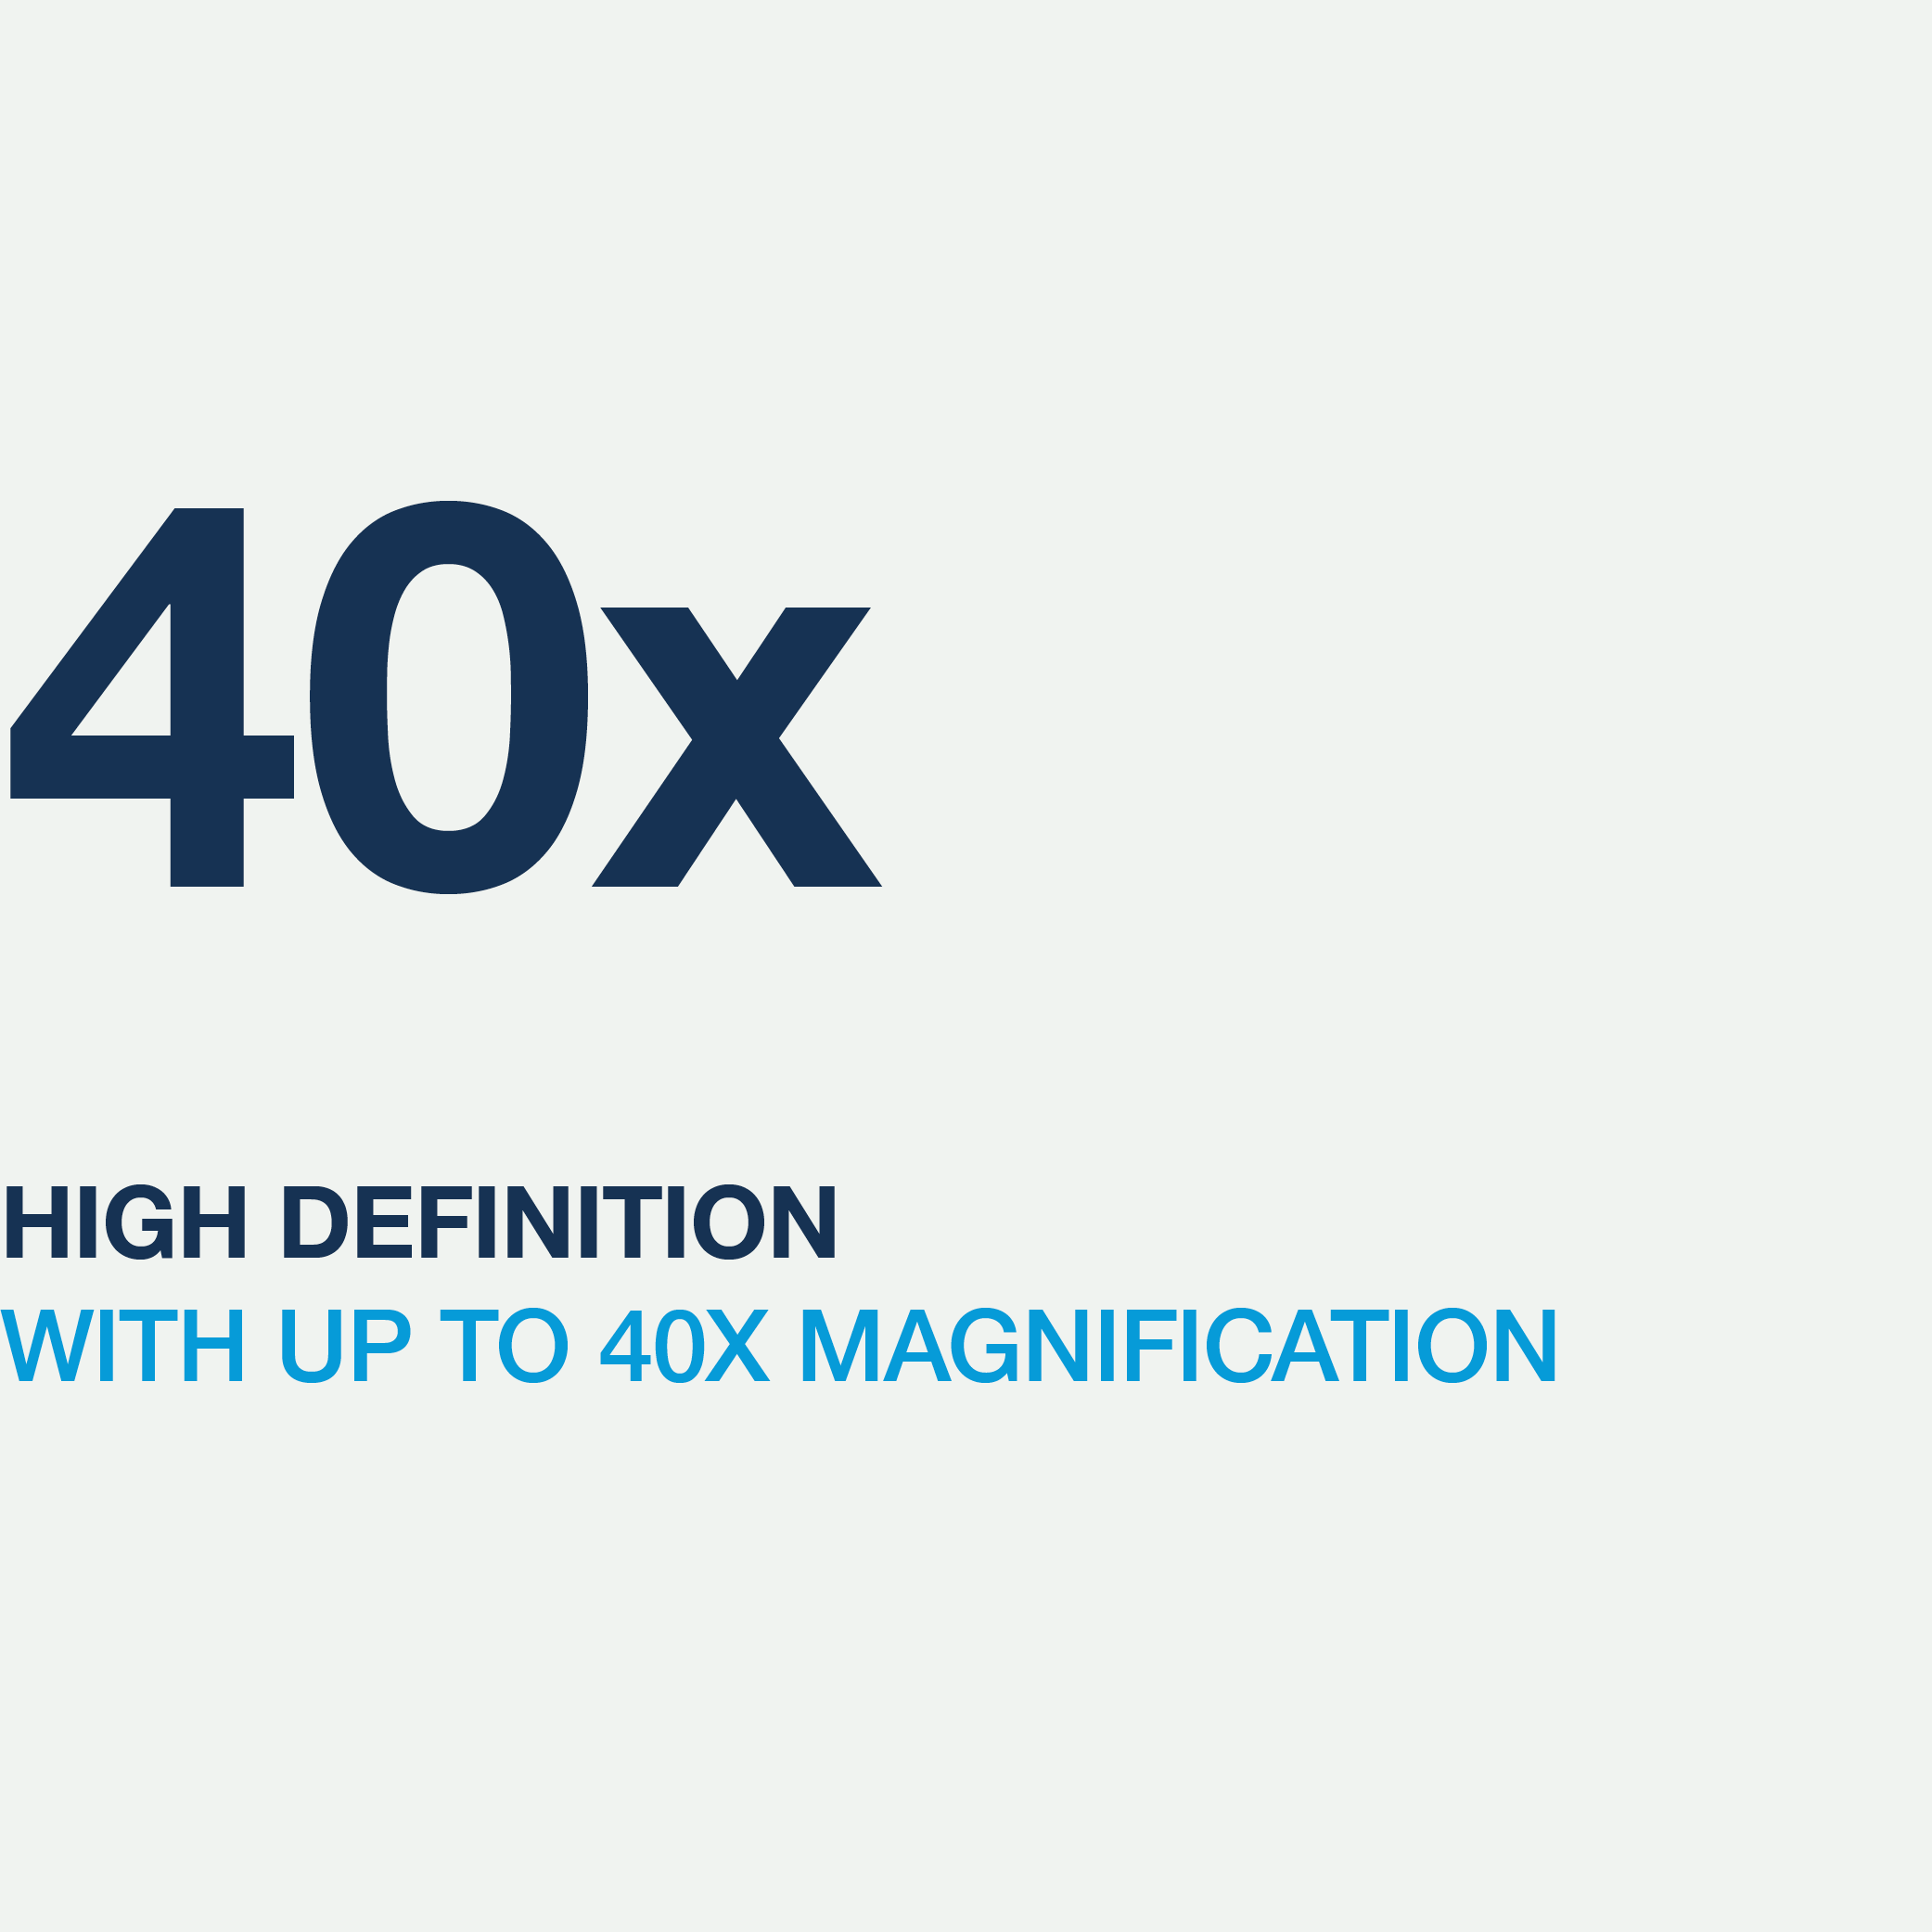 Services-40x-magnification-icon.png